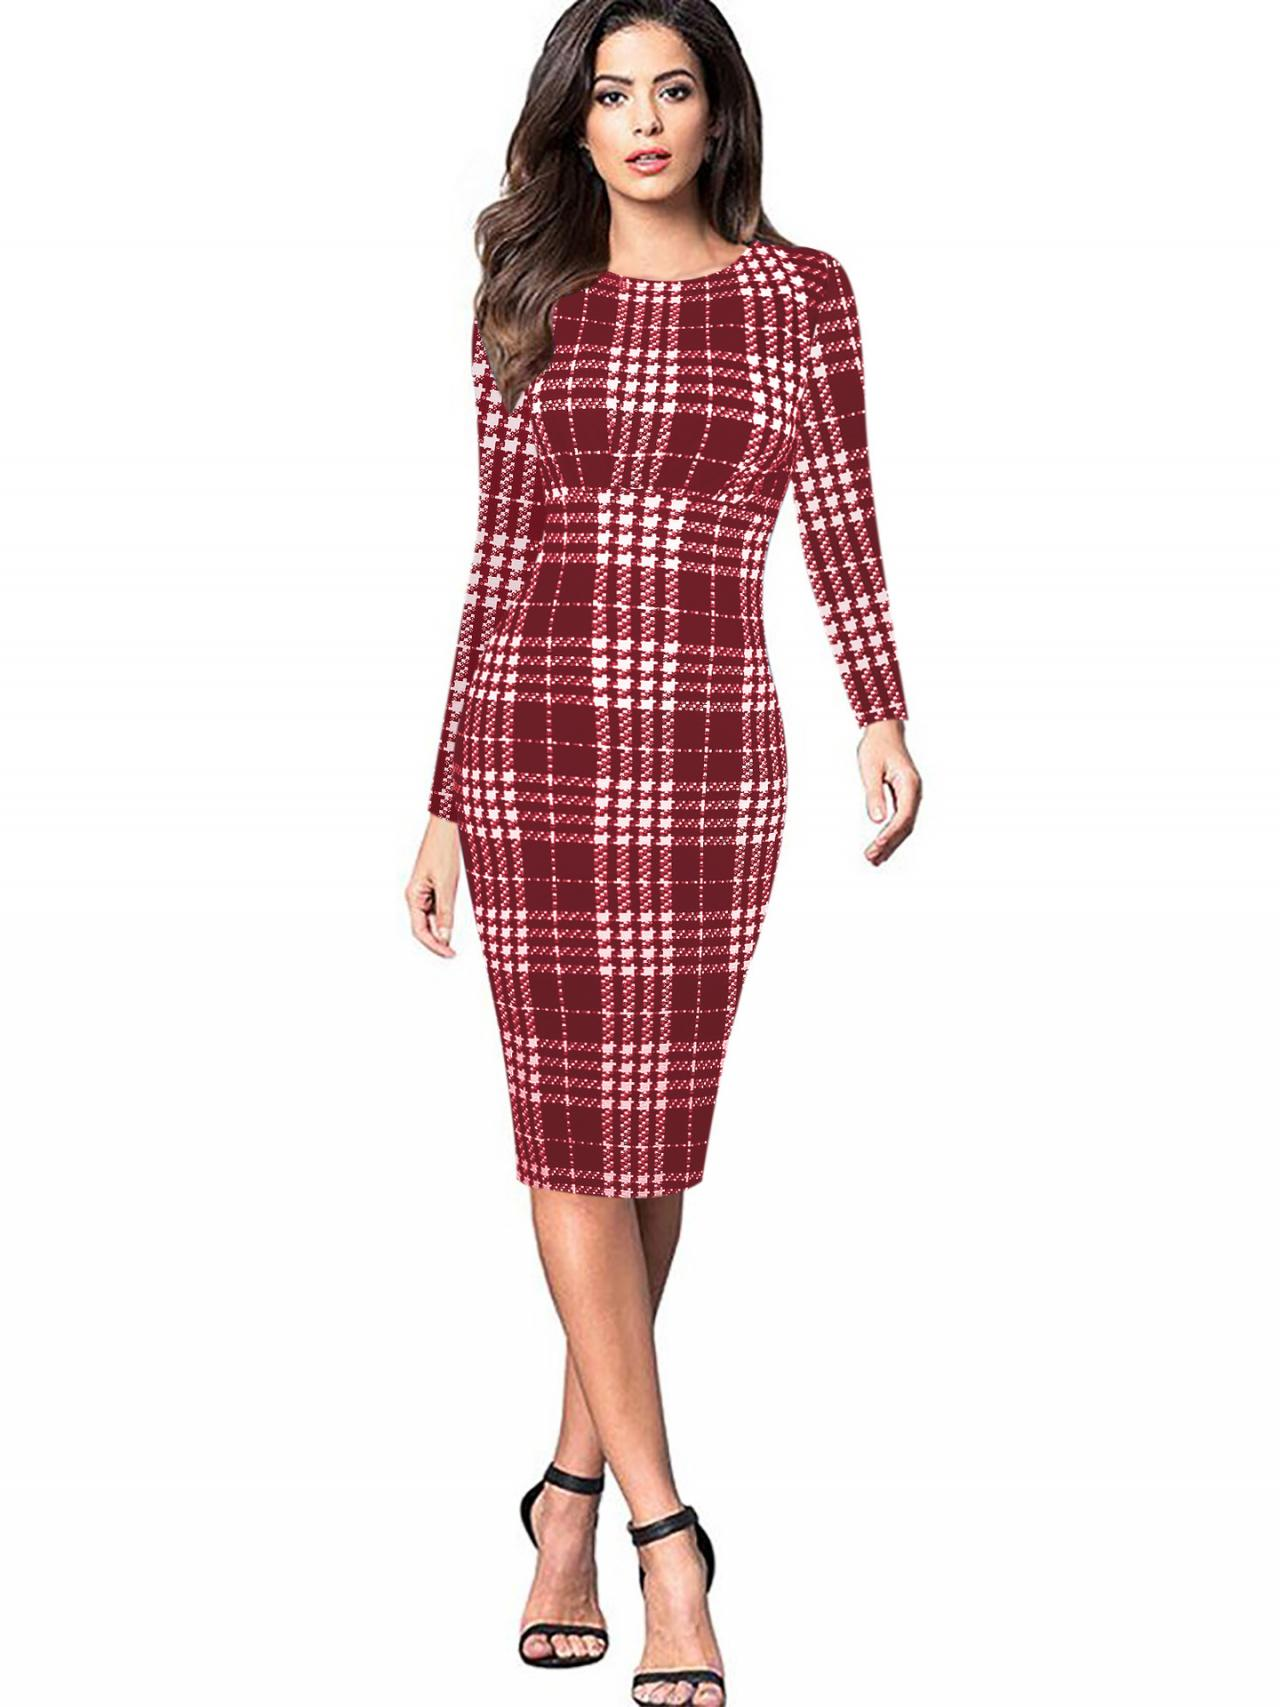 Women Long Sleeve Work Party Dress Graffiti Printed Plaid Knee Length Bodycon Pencil Dress red